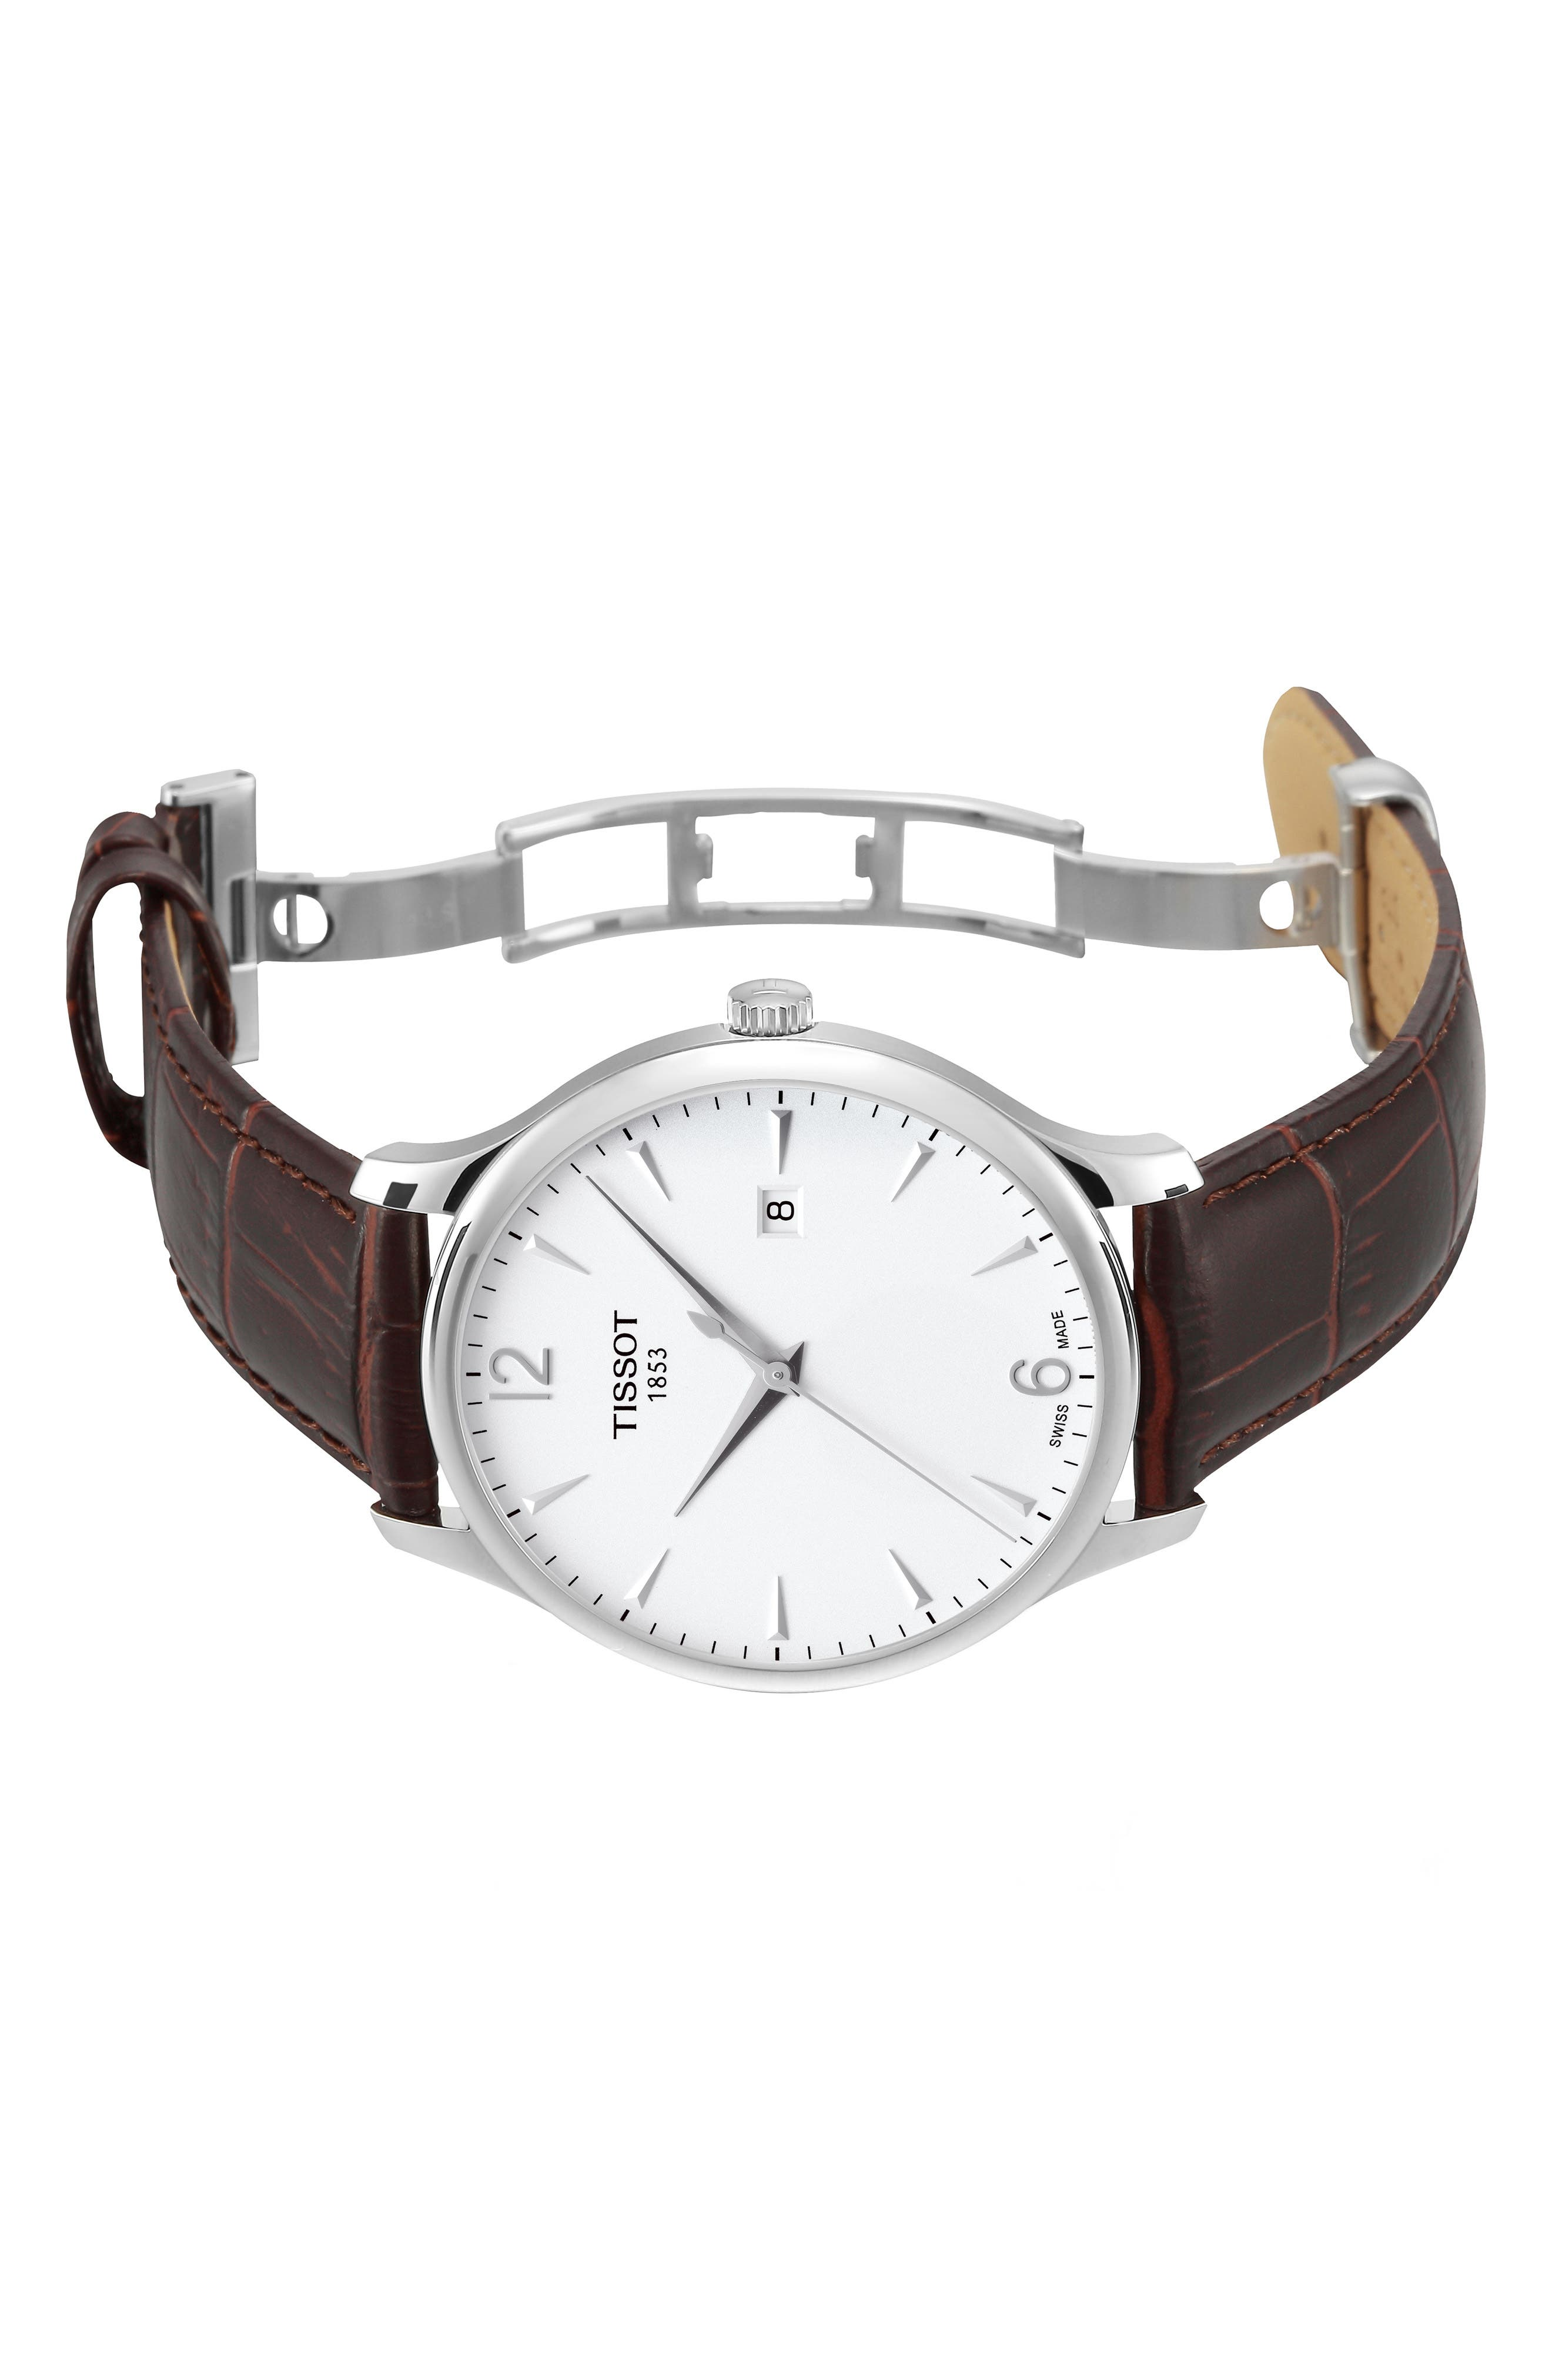 TISSOT, Tradition Leather Strap Watch, 42mm, Alternate thumbnail 8, color, BROWN/ SILVER